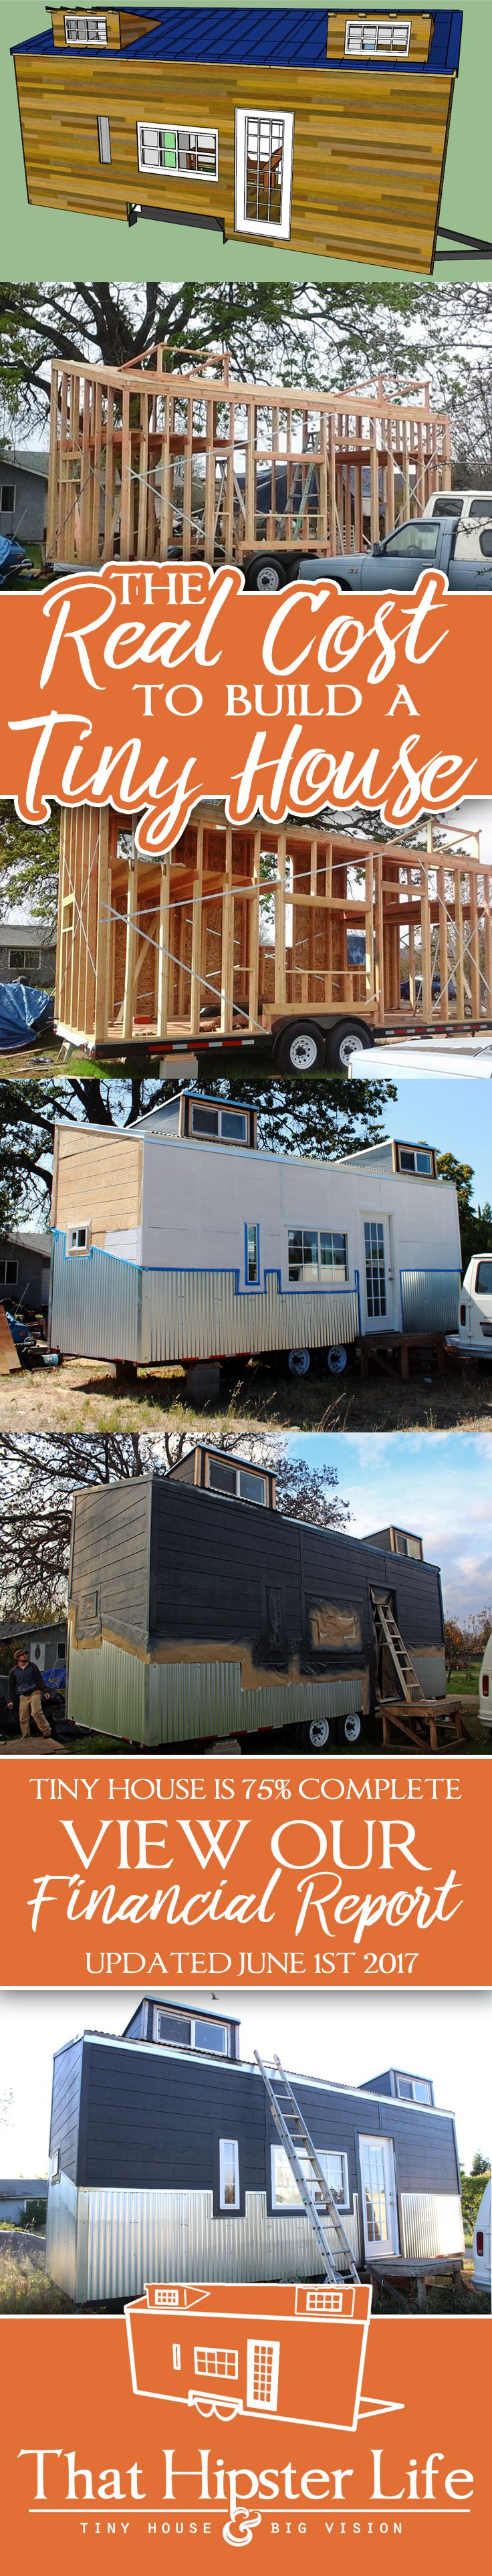 Cost to build a new home in california - 25 Best Ideas About Building A House Cost On Pinterest Tiny Home Cost Tiny Houses Cost And Building Costs